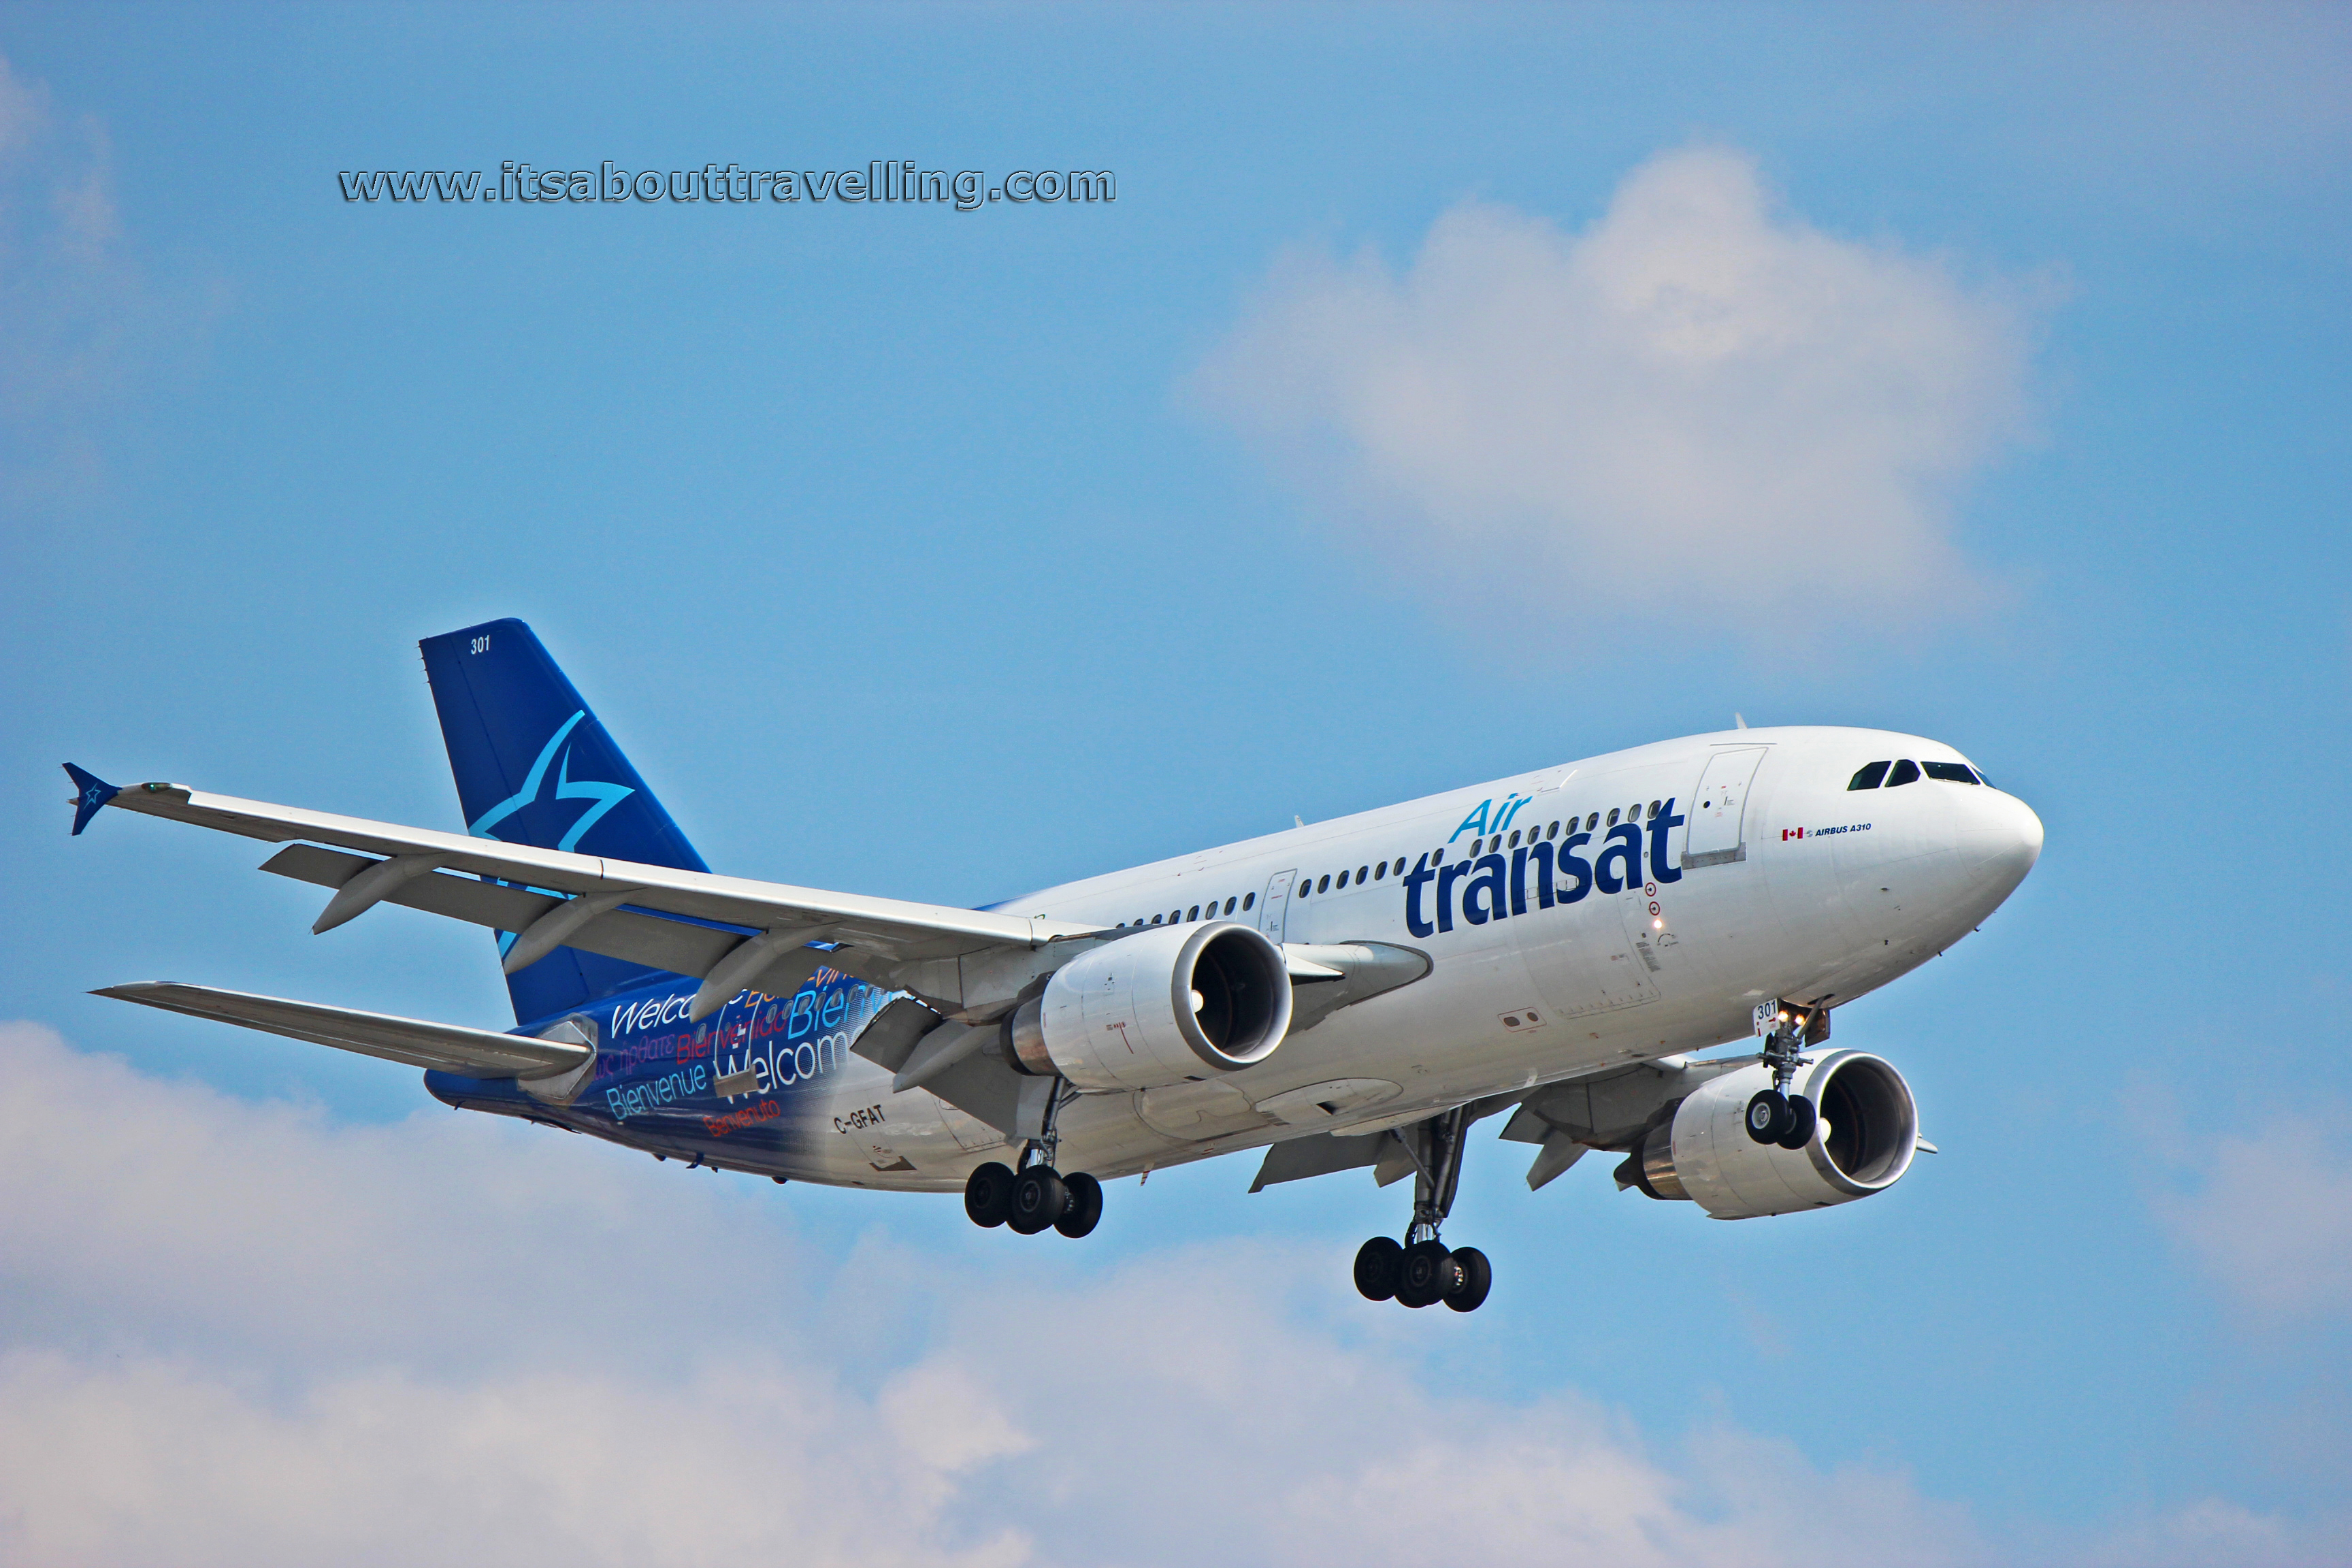 toronto pearson plane spotting september 20 2014 it s about travelling